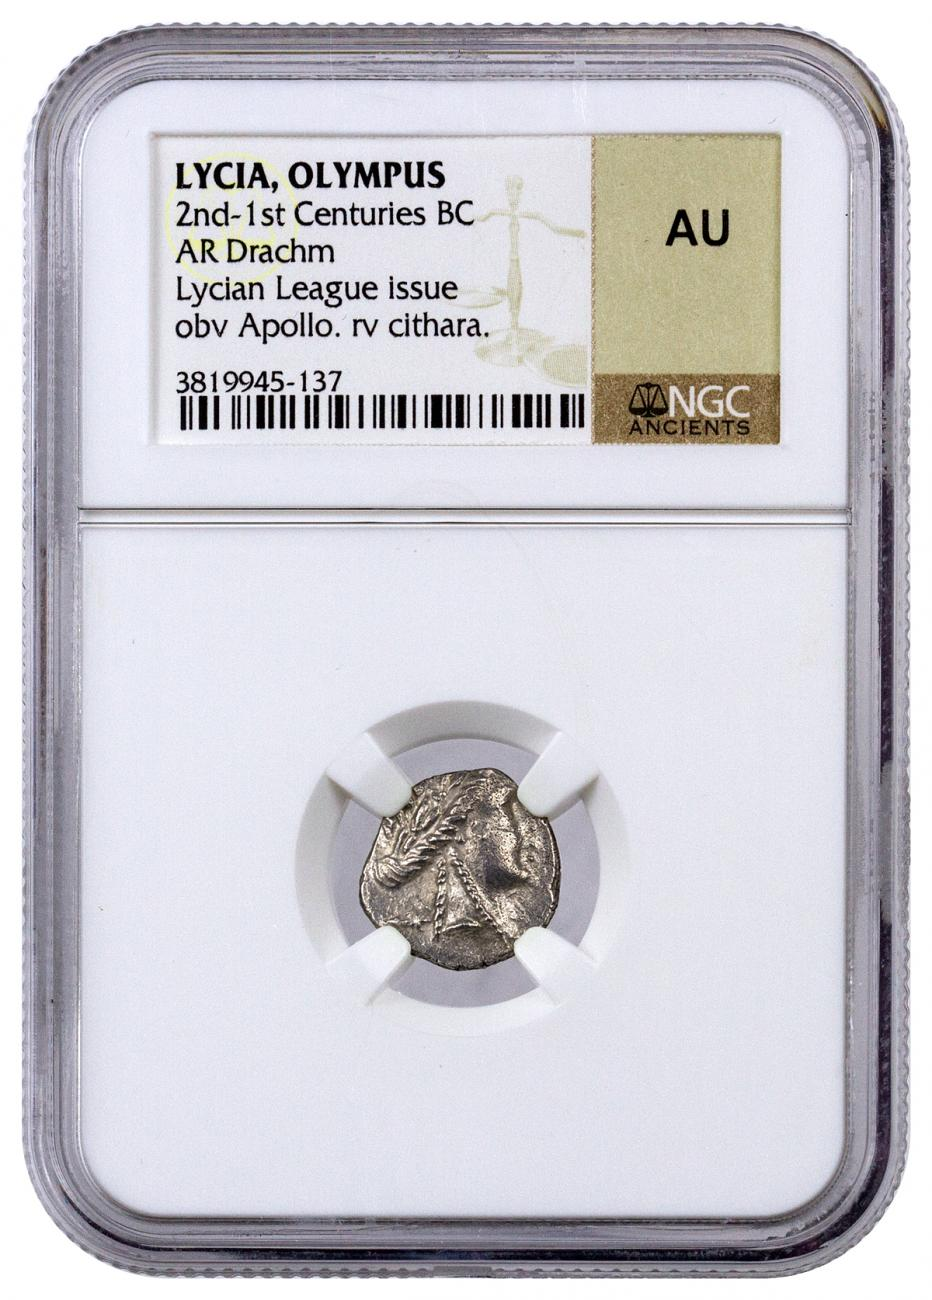 Lycia, Olympus Silver Drachm of the Lycian League (2nd-1st Centuries BC) - obv. Apollo/rv. Cithara NGC AU